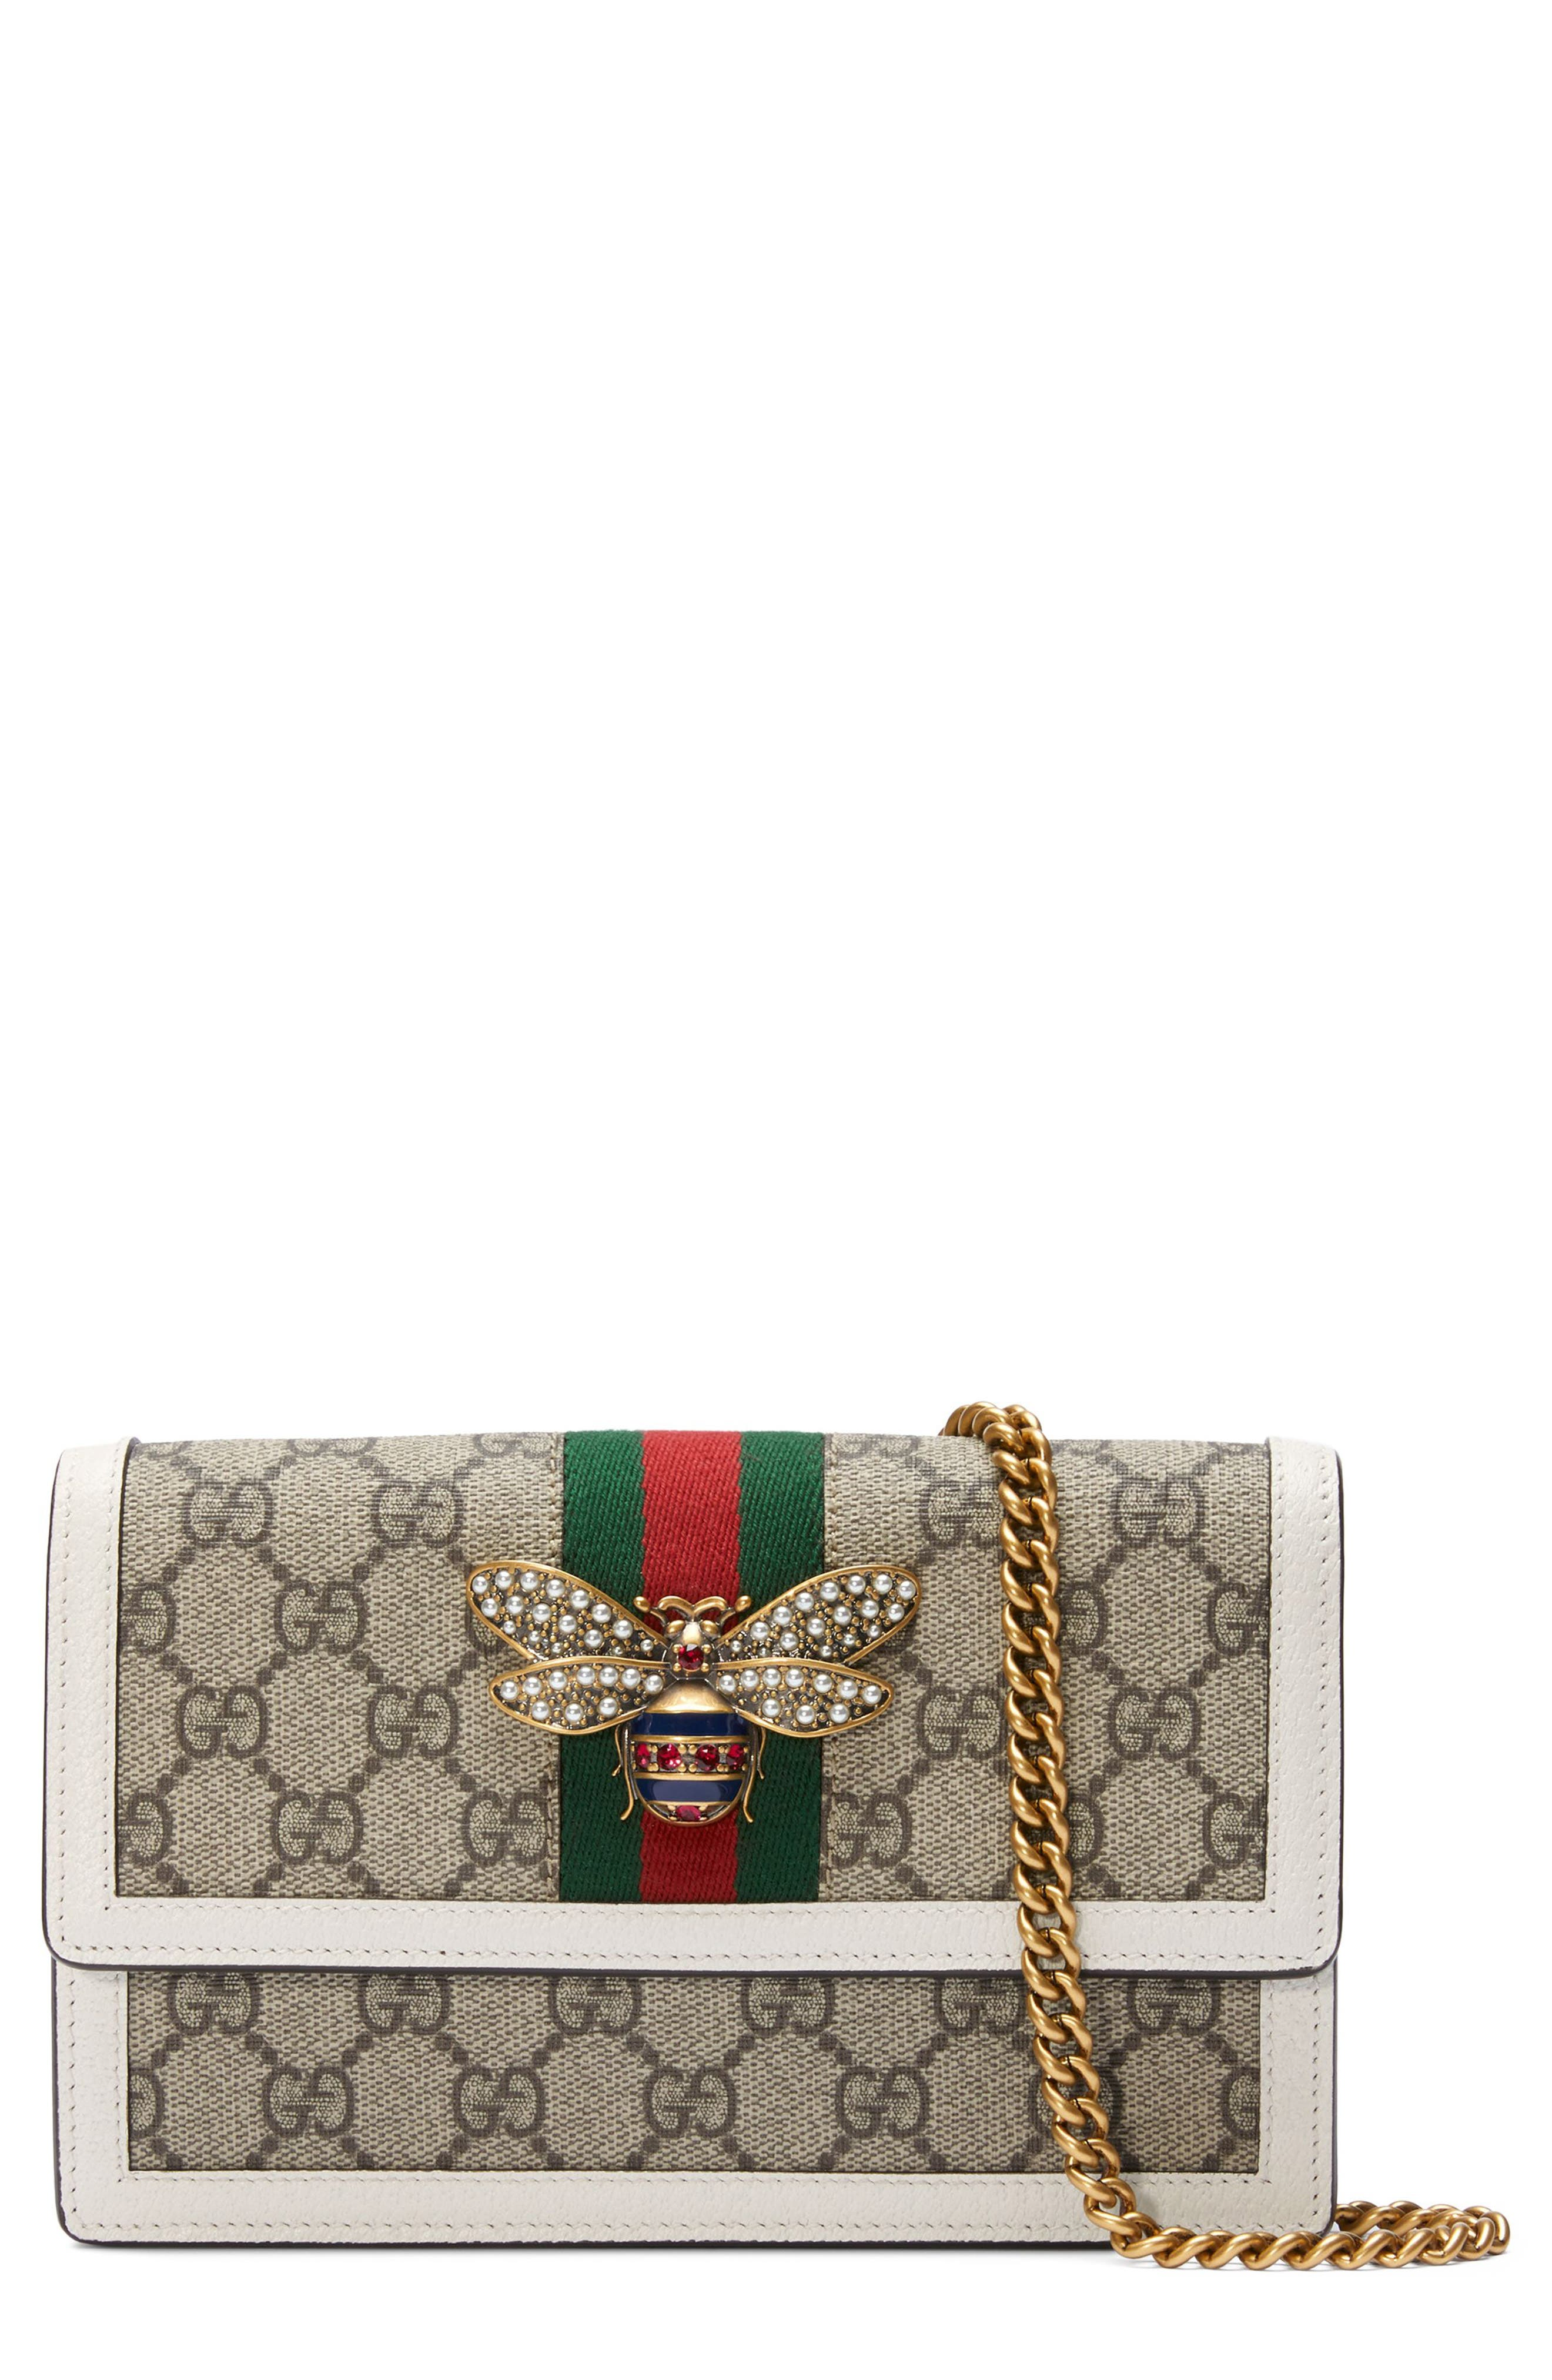 Queen Margaret GG Supreme Canvas Wallet on a Chain,                             Main thumbnail 1, color,                             250